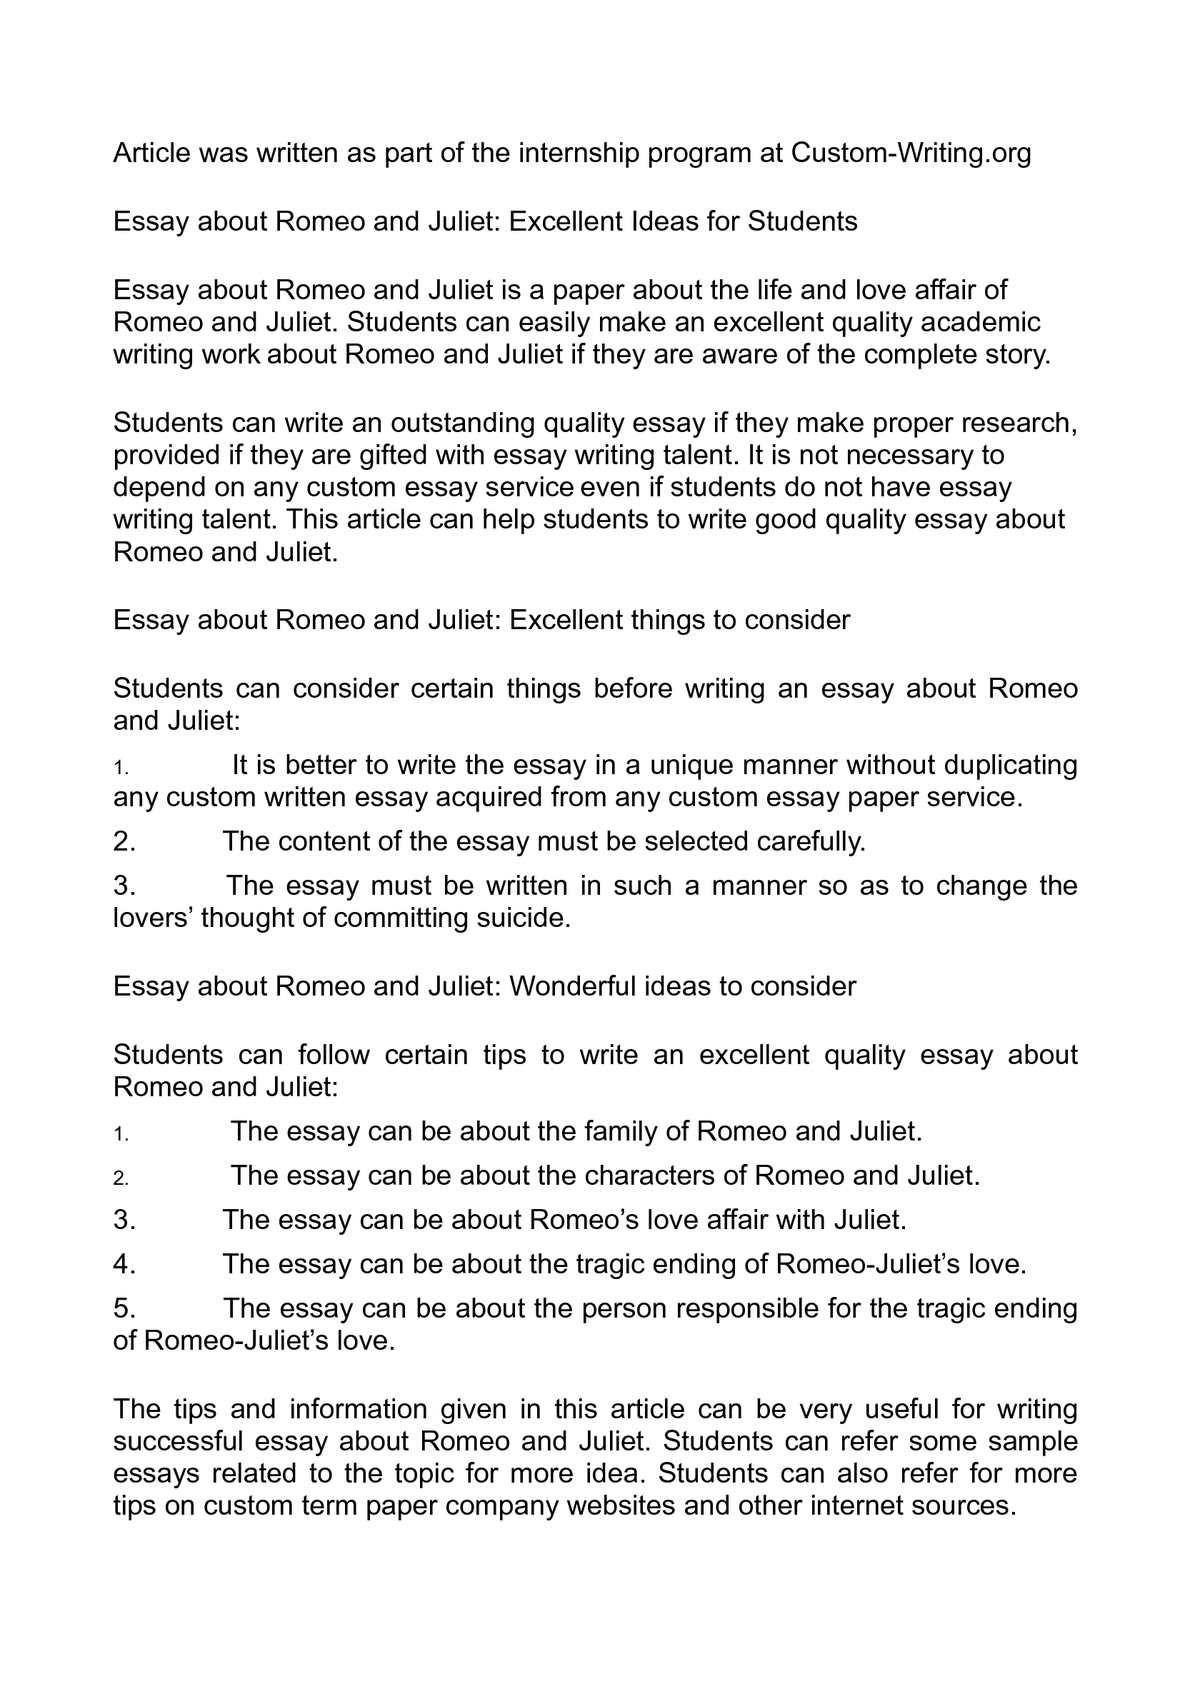 009 Surprising Romeo And Juliet Essay Photo  Who I Responsible For Juliet' Death Introduction Hook Question PdfFull